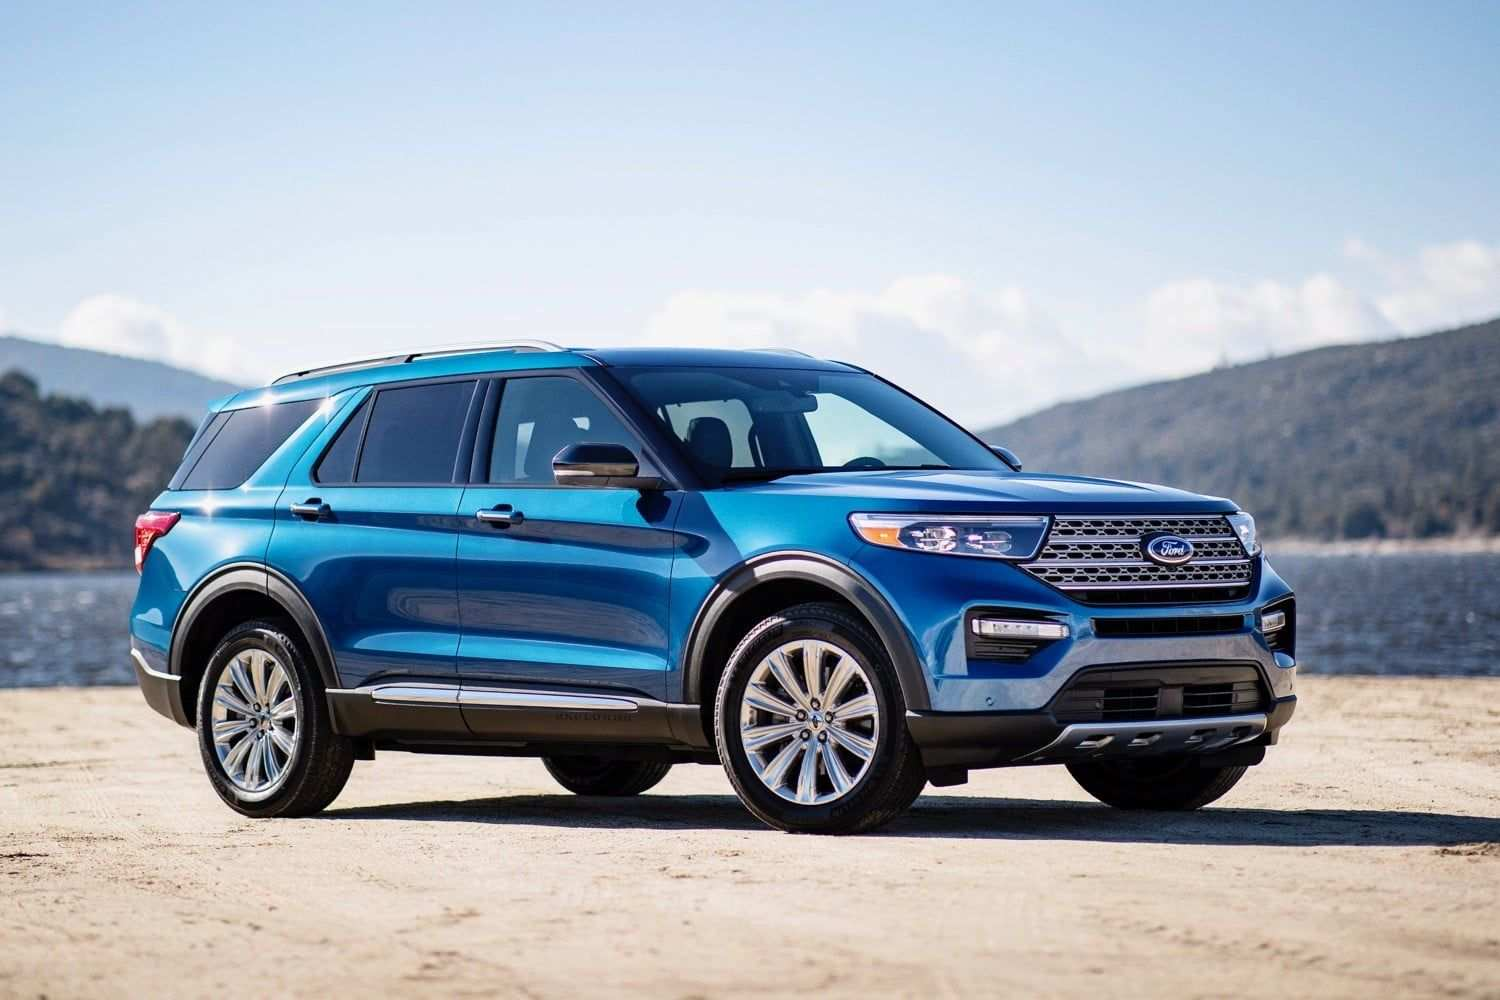 11 Great 2020 Ford Explorer Job 1 Redesign and Concept for 2020 Ford Explorer Job 1